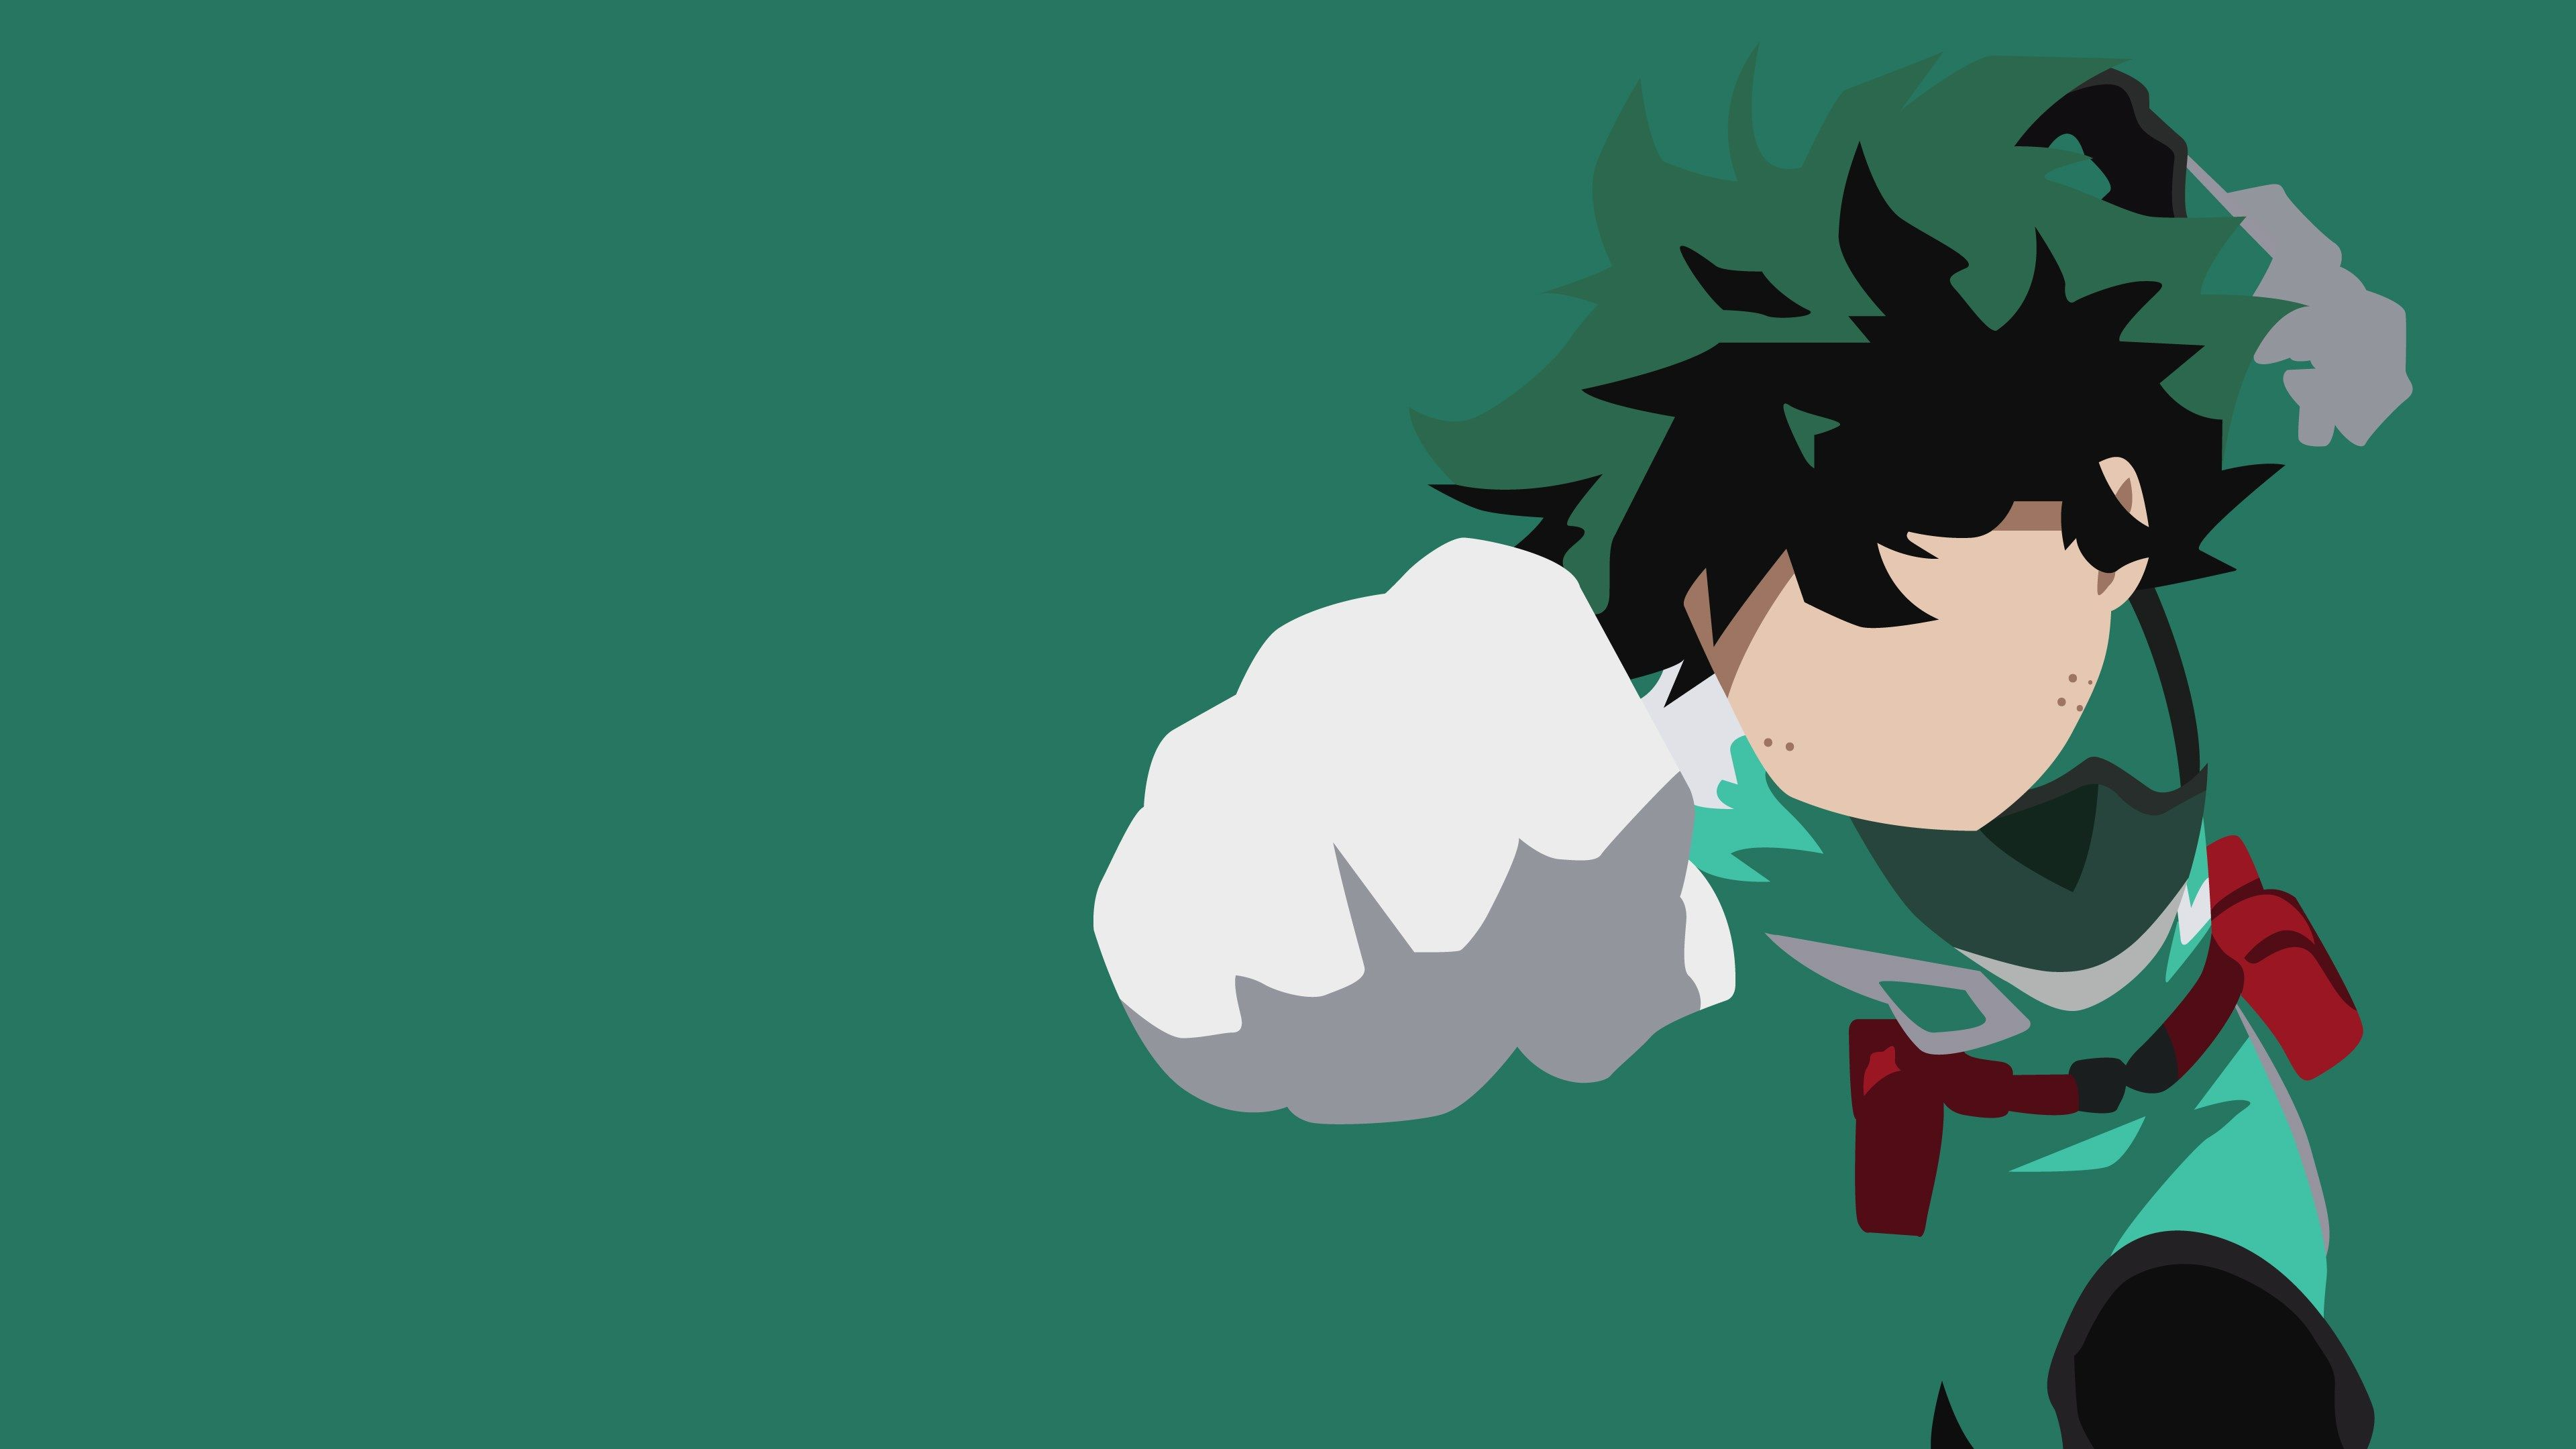 3840x2160 Free Download Boku No Hero Academia Hero Wallpaper Anime Canvas My Hero